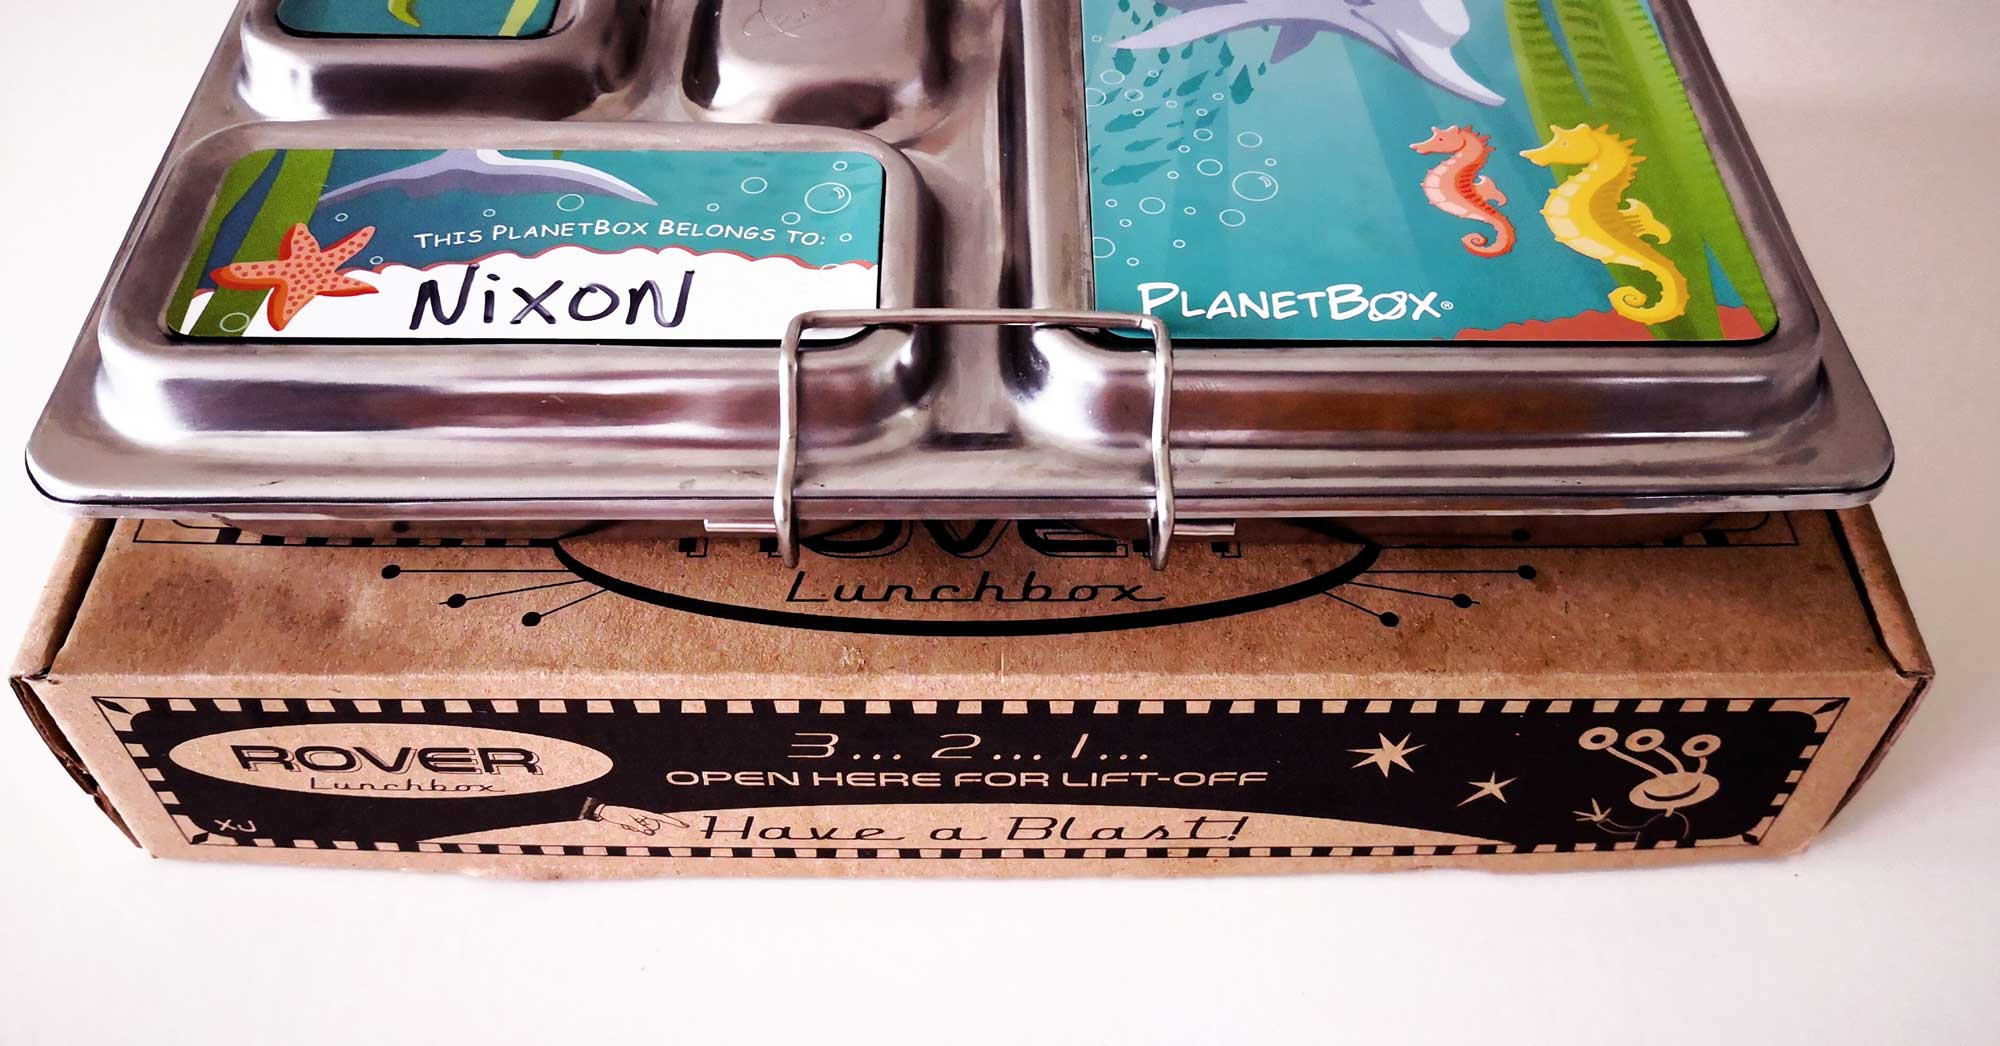 PlanetBox Review: Nixon's quirky eating and the Lunchbox that makes it all ok